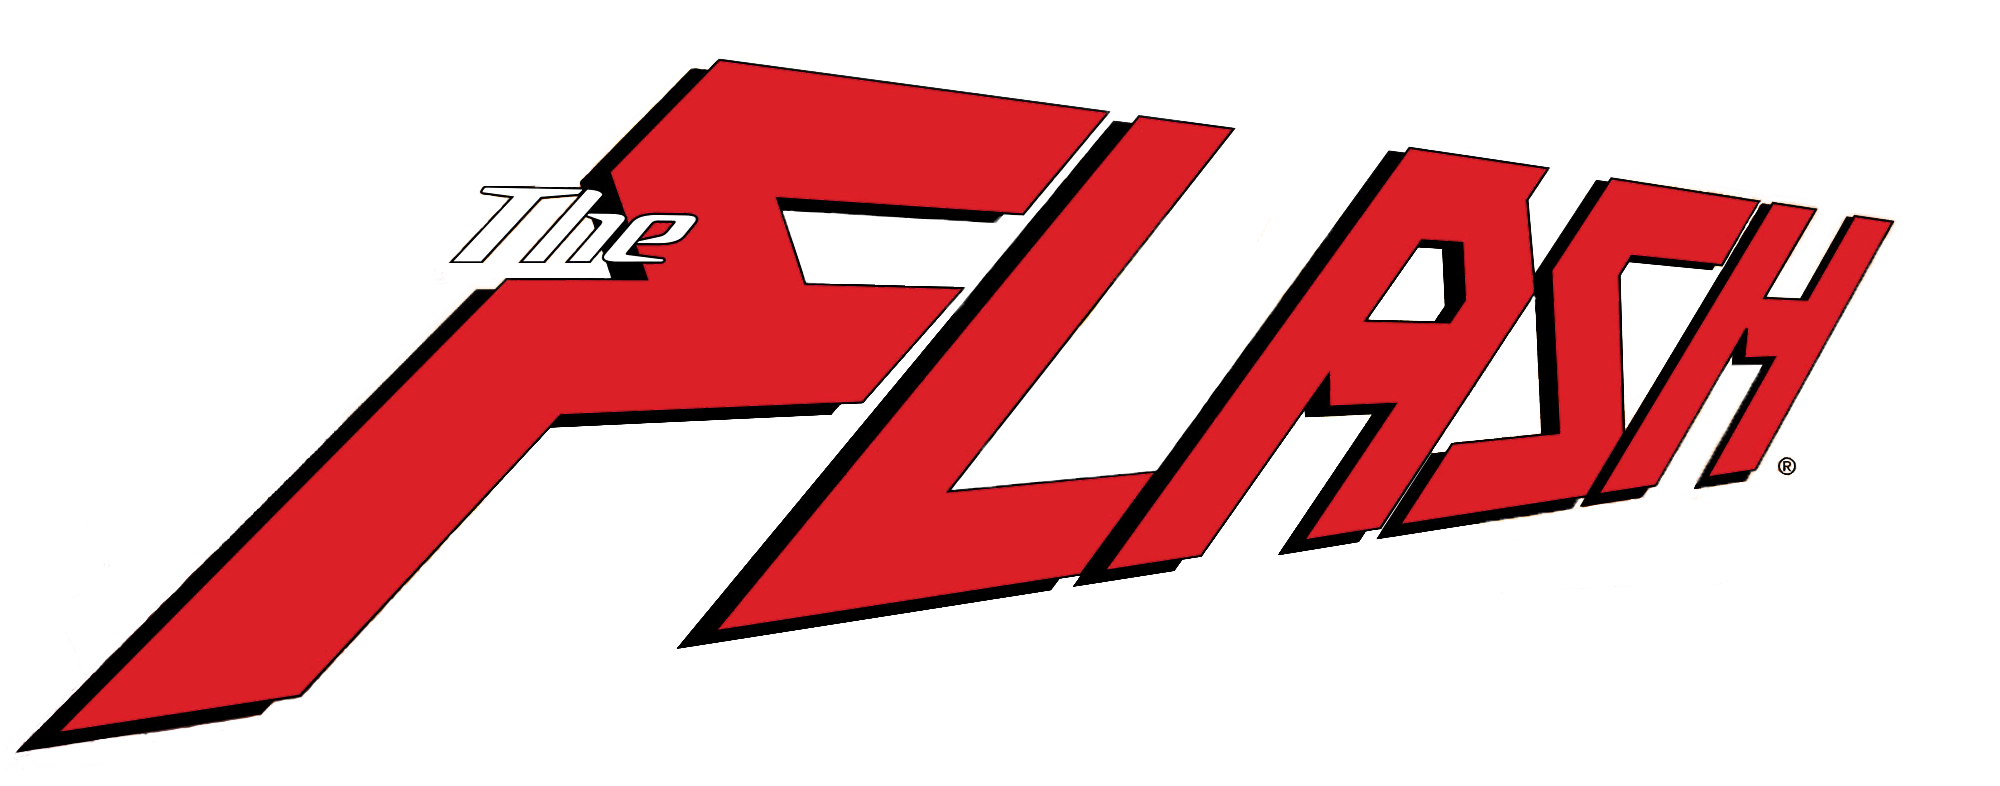 image wwcbm logo flash png who s who in comic book movies wikia